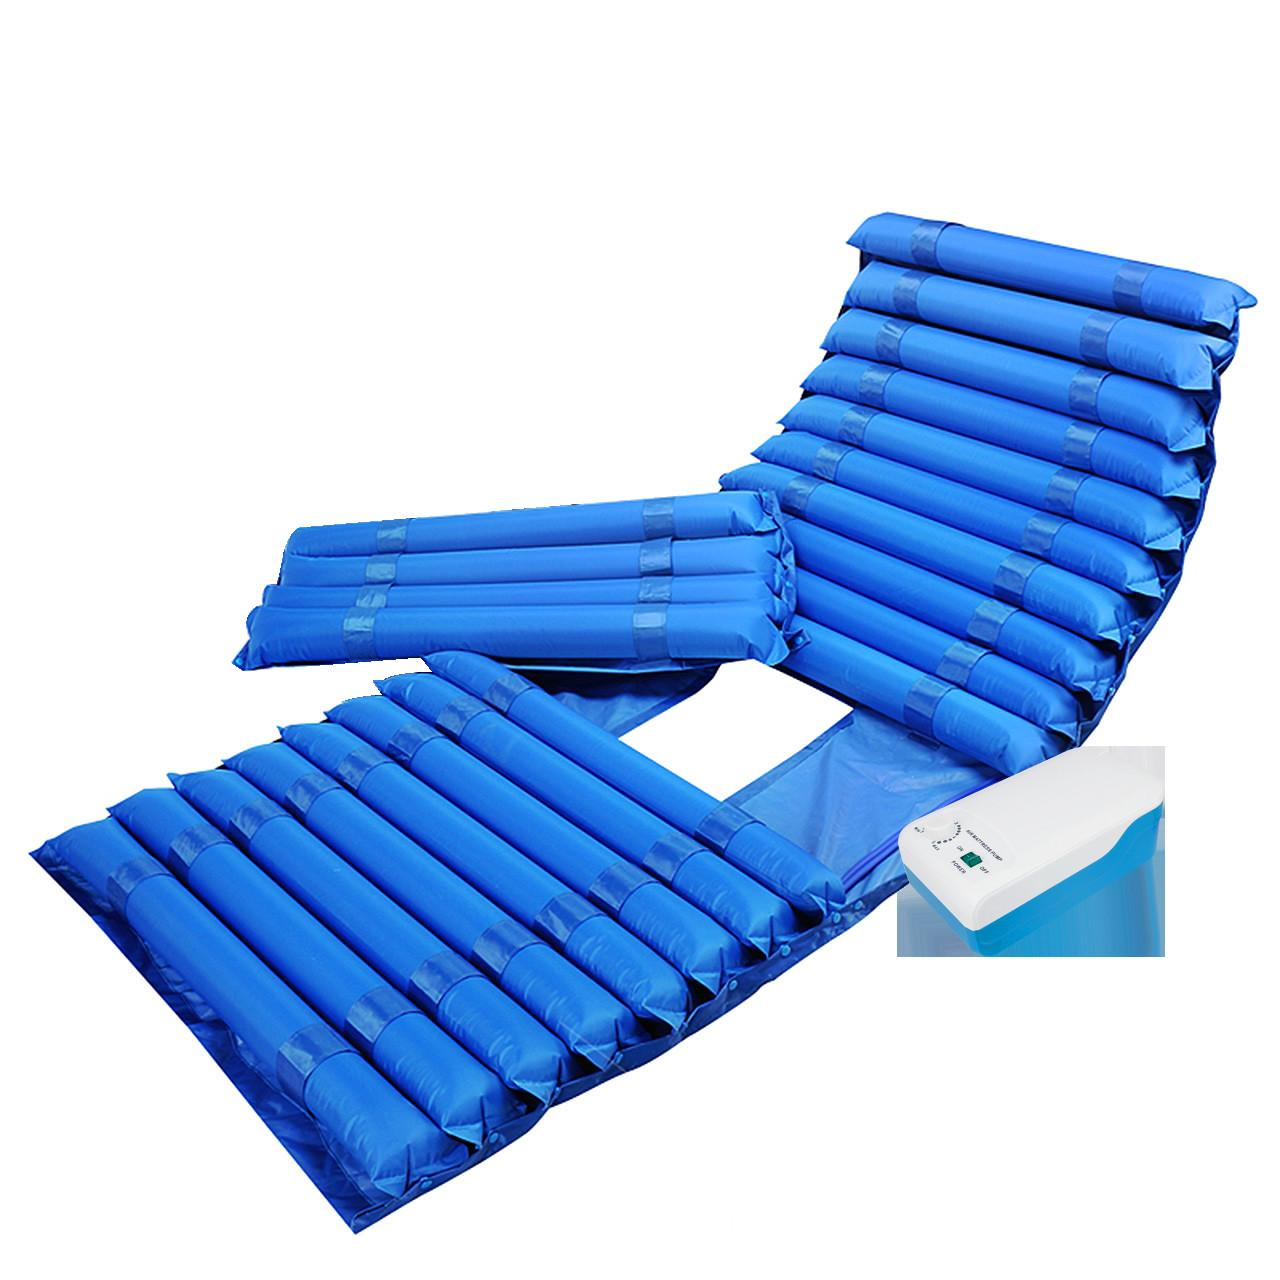 5.0-5.5L/minute Air Output Anti Decubitus Tube Mattress , Strip Alternating Air Mattress with Big Pump